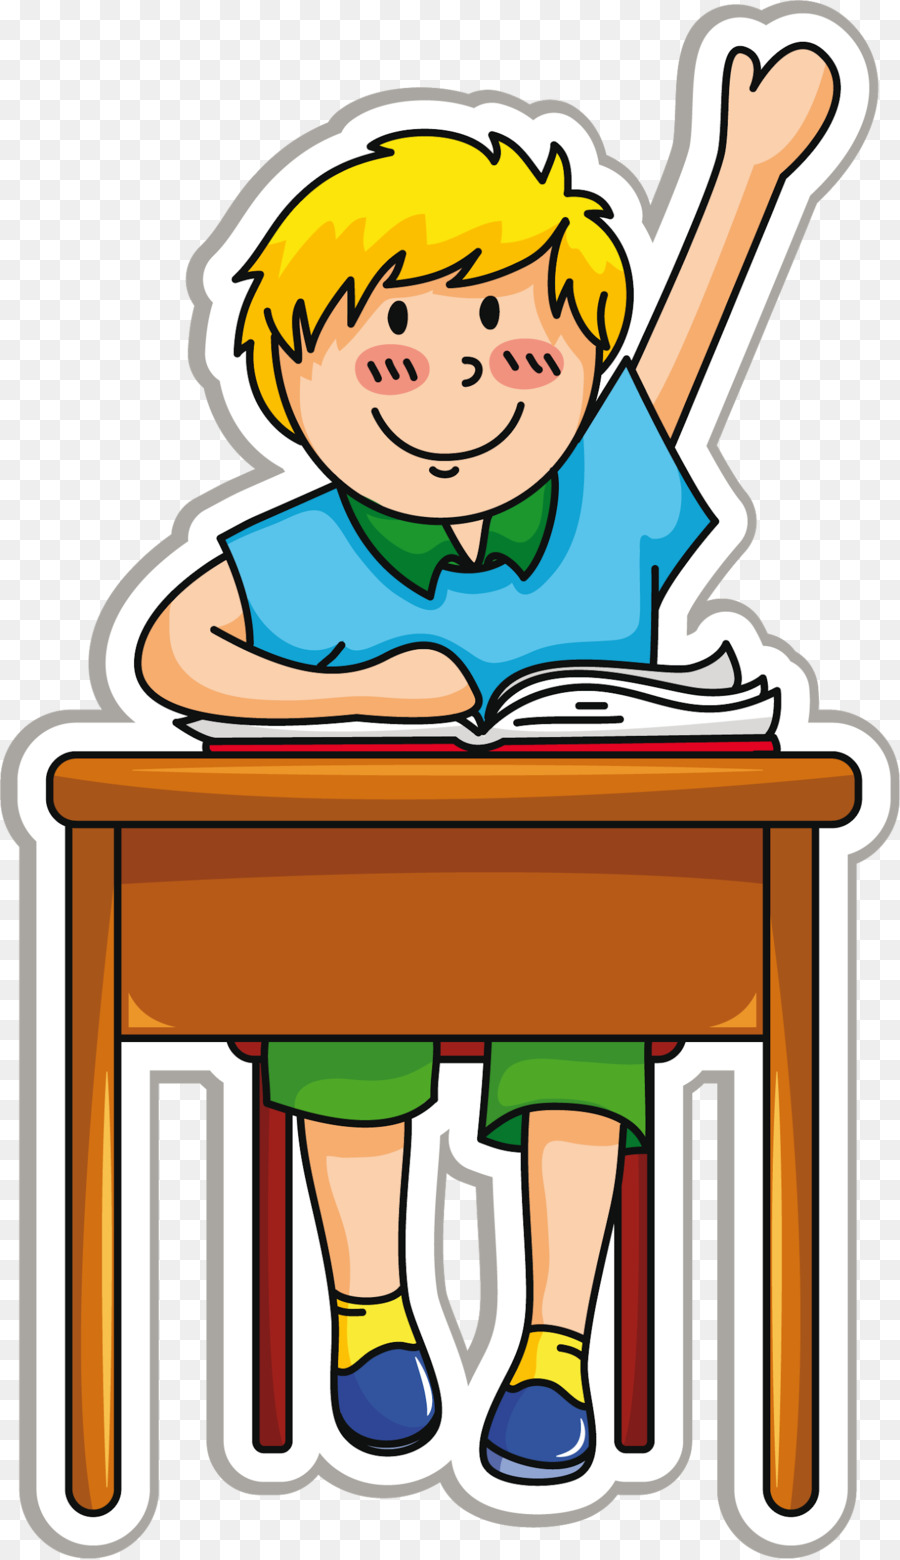 School Desk clipart.